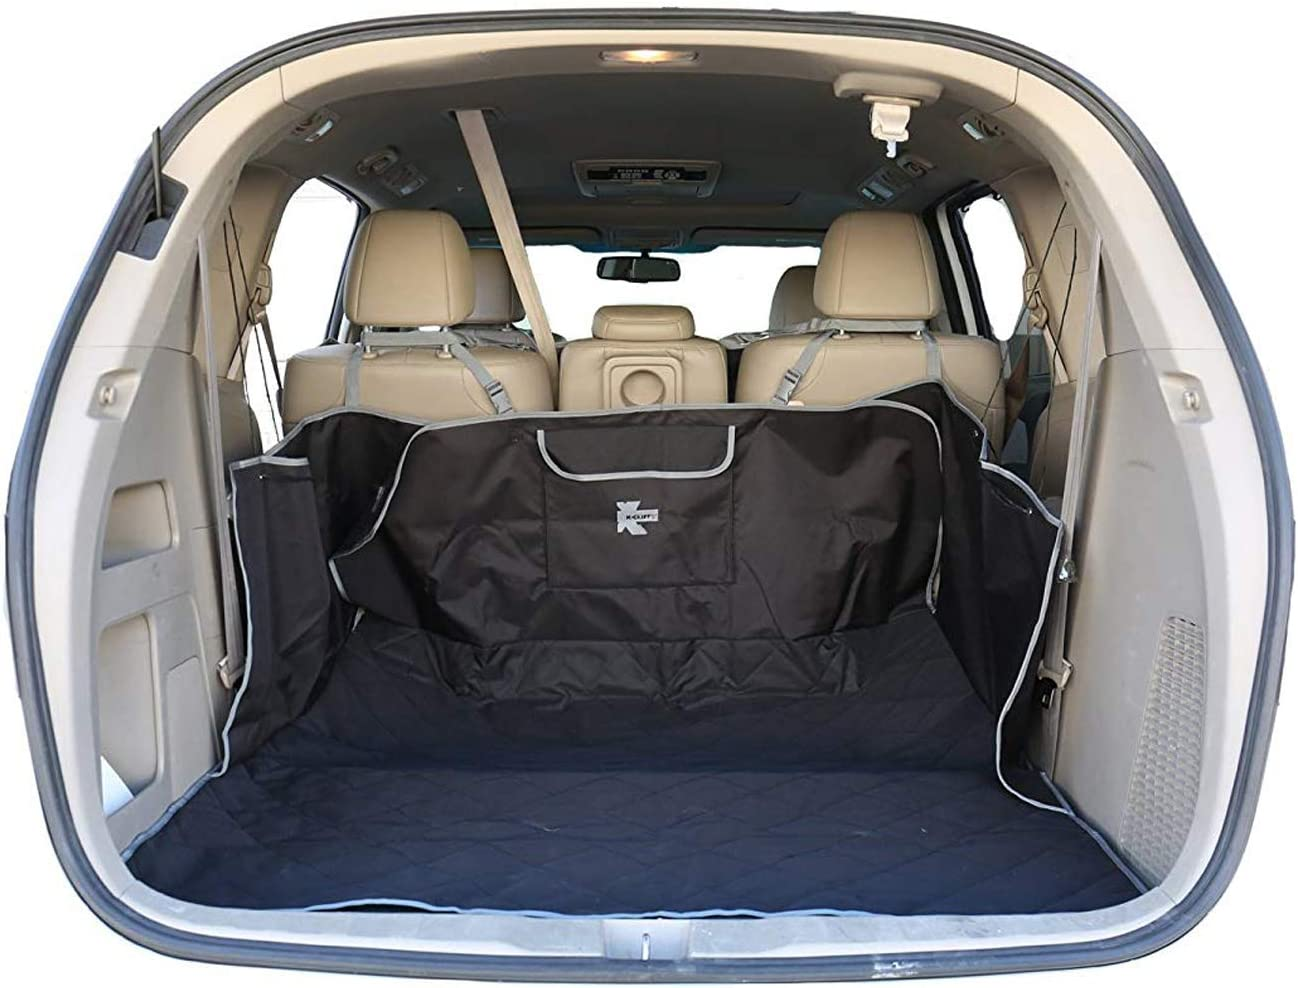 K-Cliffs Pet Cargo Cover Pet Waterproof Quilted Trunk Protector Liner Heavy Duty Trunk Floor Mat Bed Large Covers for Pets Fits Most Car SUV Van Truck with Pocket